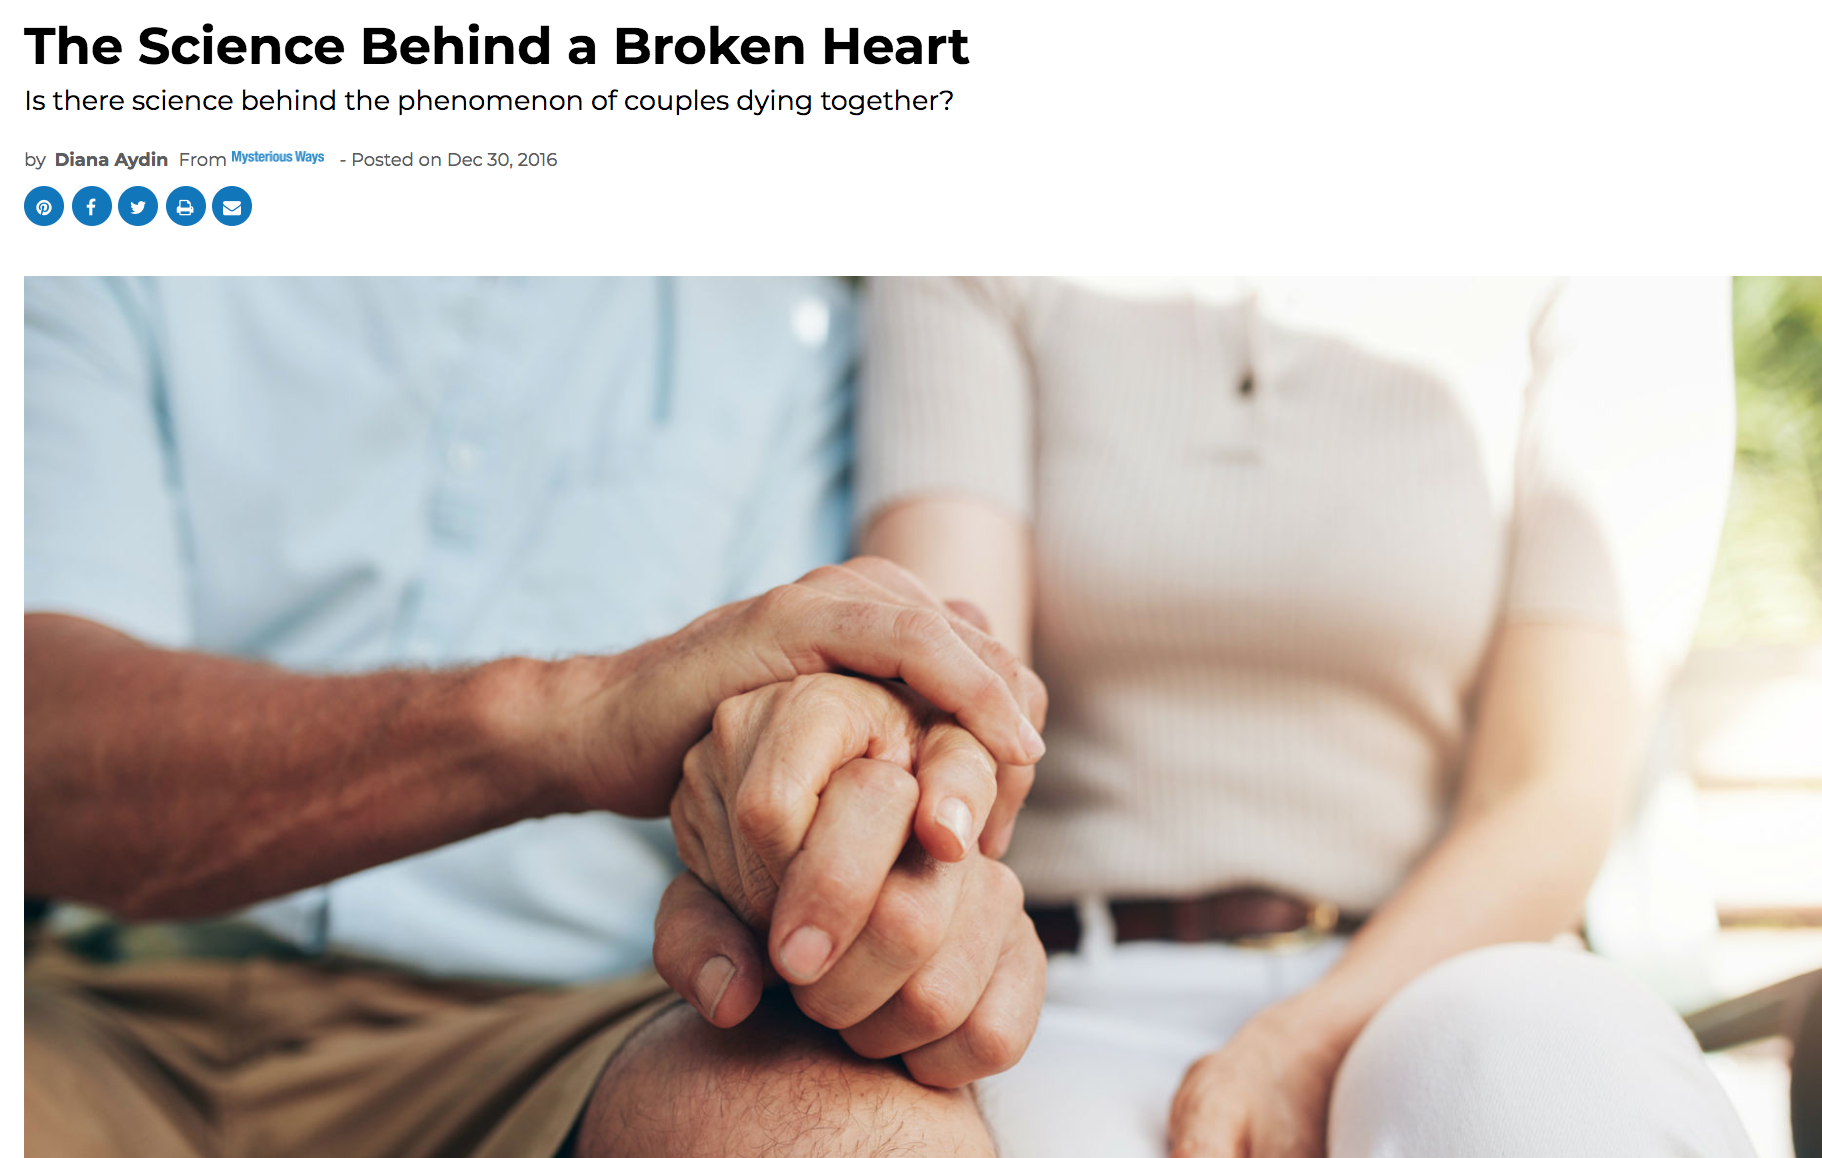 The Science Behind a Broken Heart